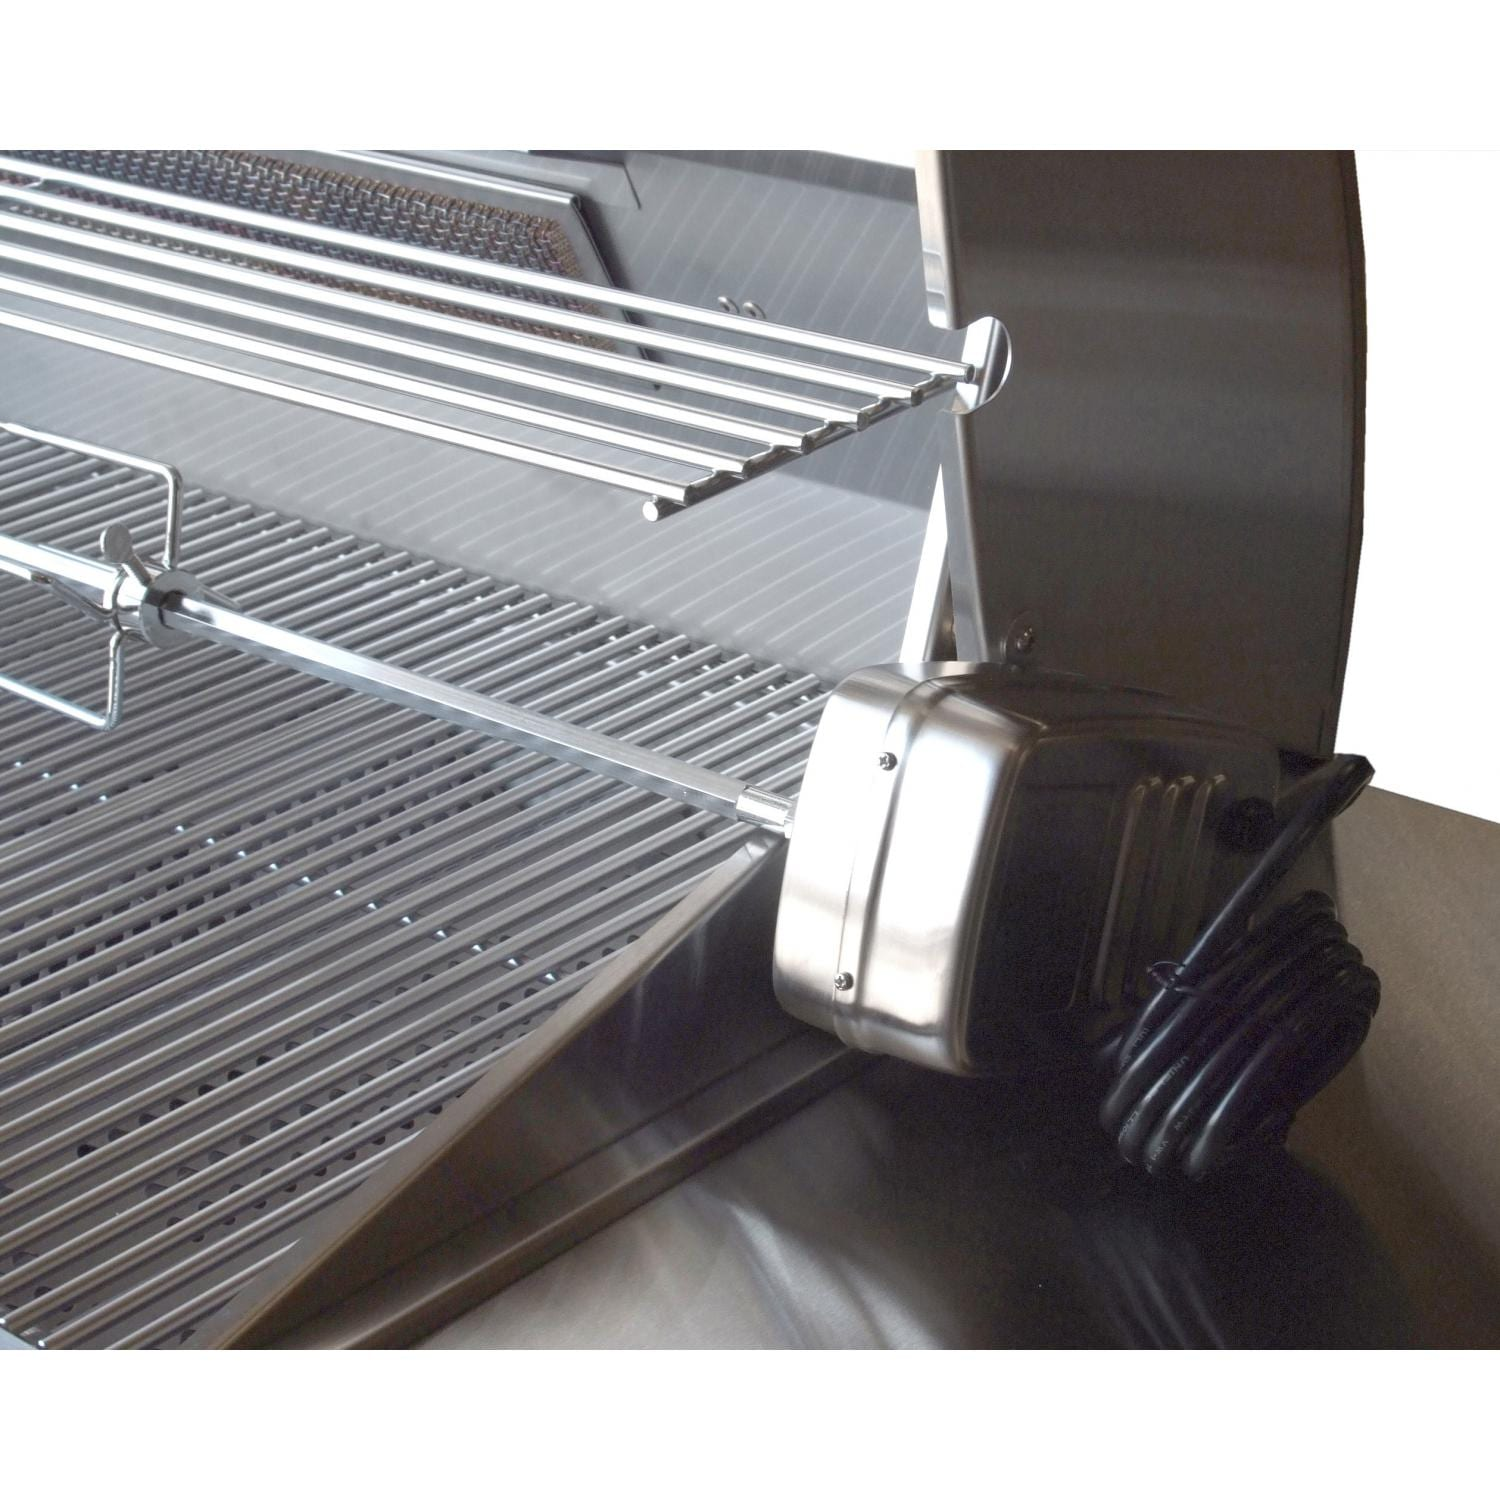 American Outdoor Grill 36-Inch Gas Grill Warming Rack